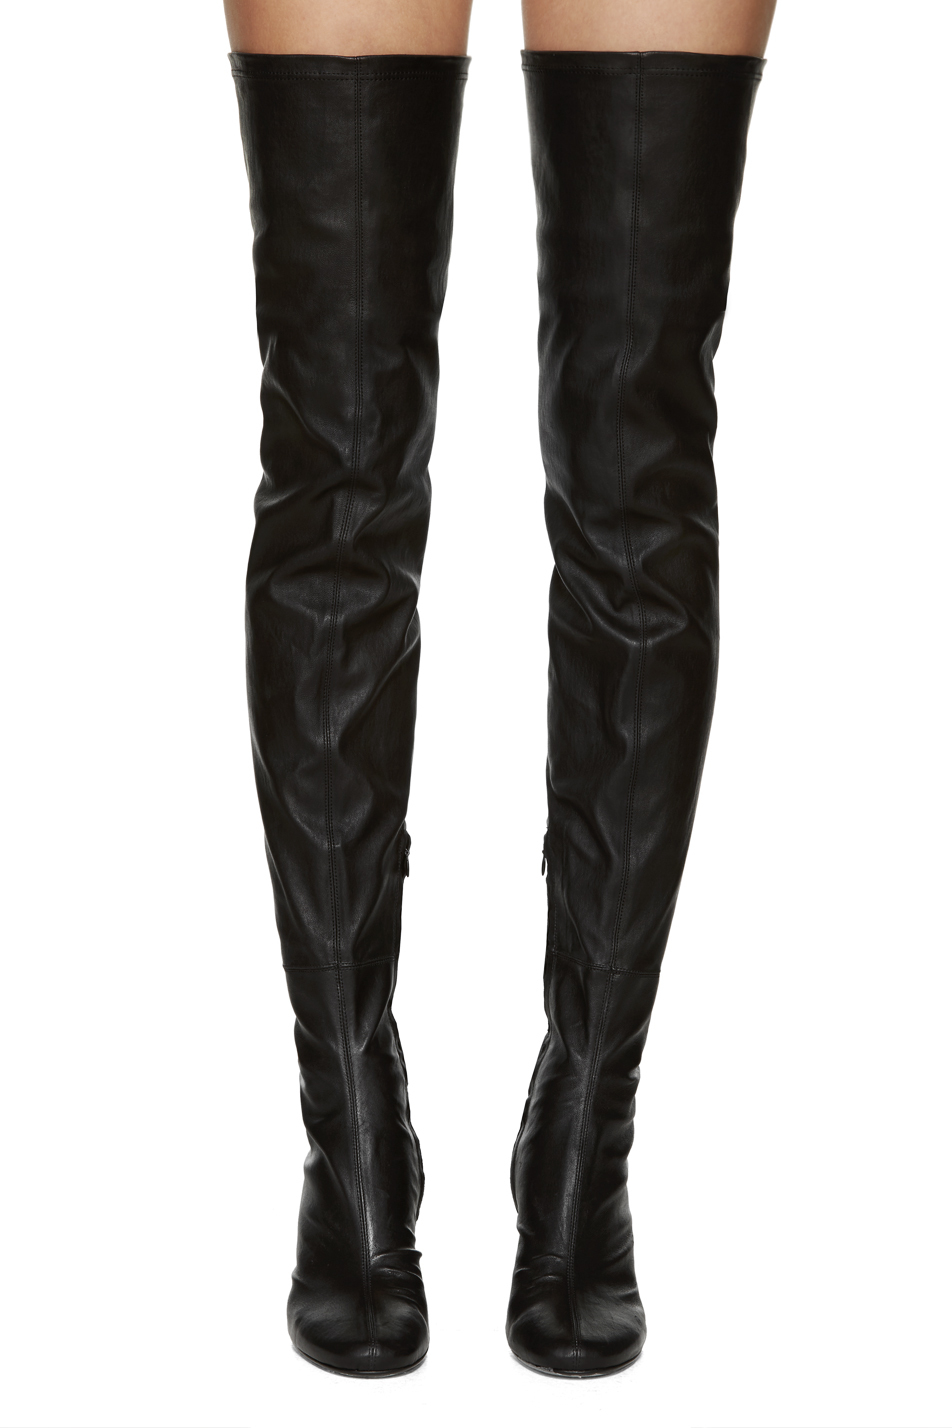 Dolce Vita Jimmy Over-the-Knee Suede Boots $ BUY NOW The thigh-high shaft of these Dolce Vita boots keep your legs looking long and lean (similar to the the effect of black tights).